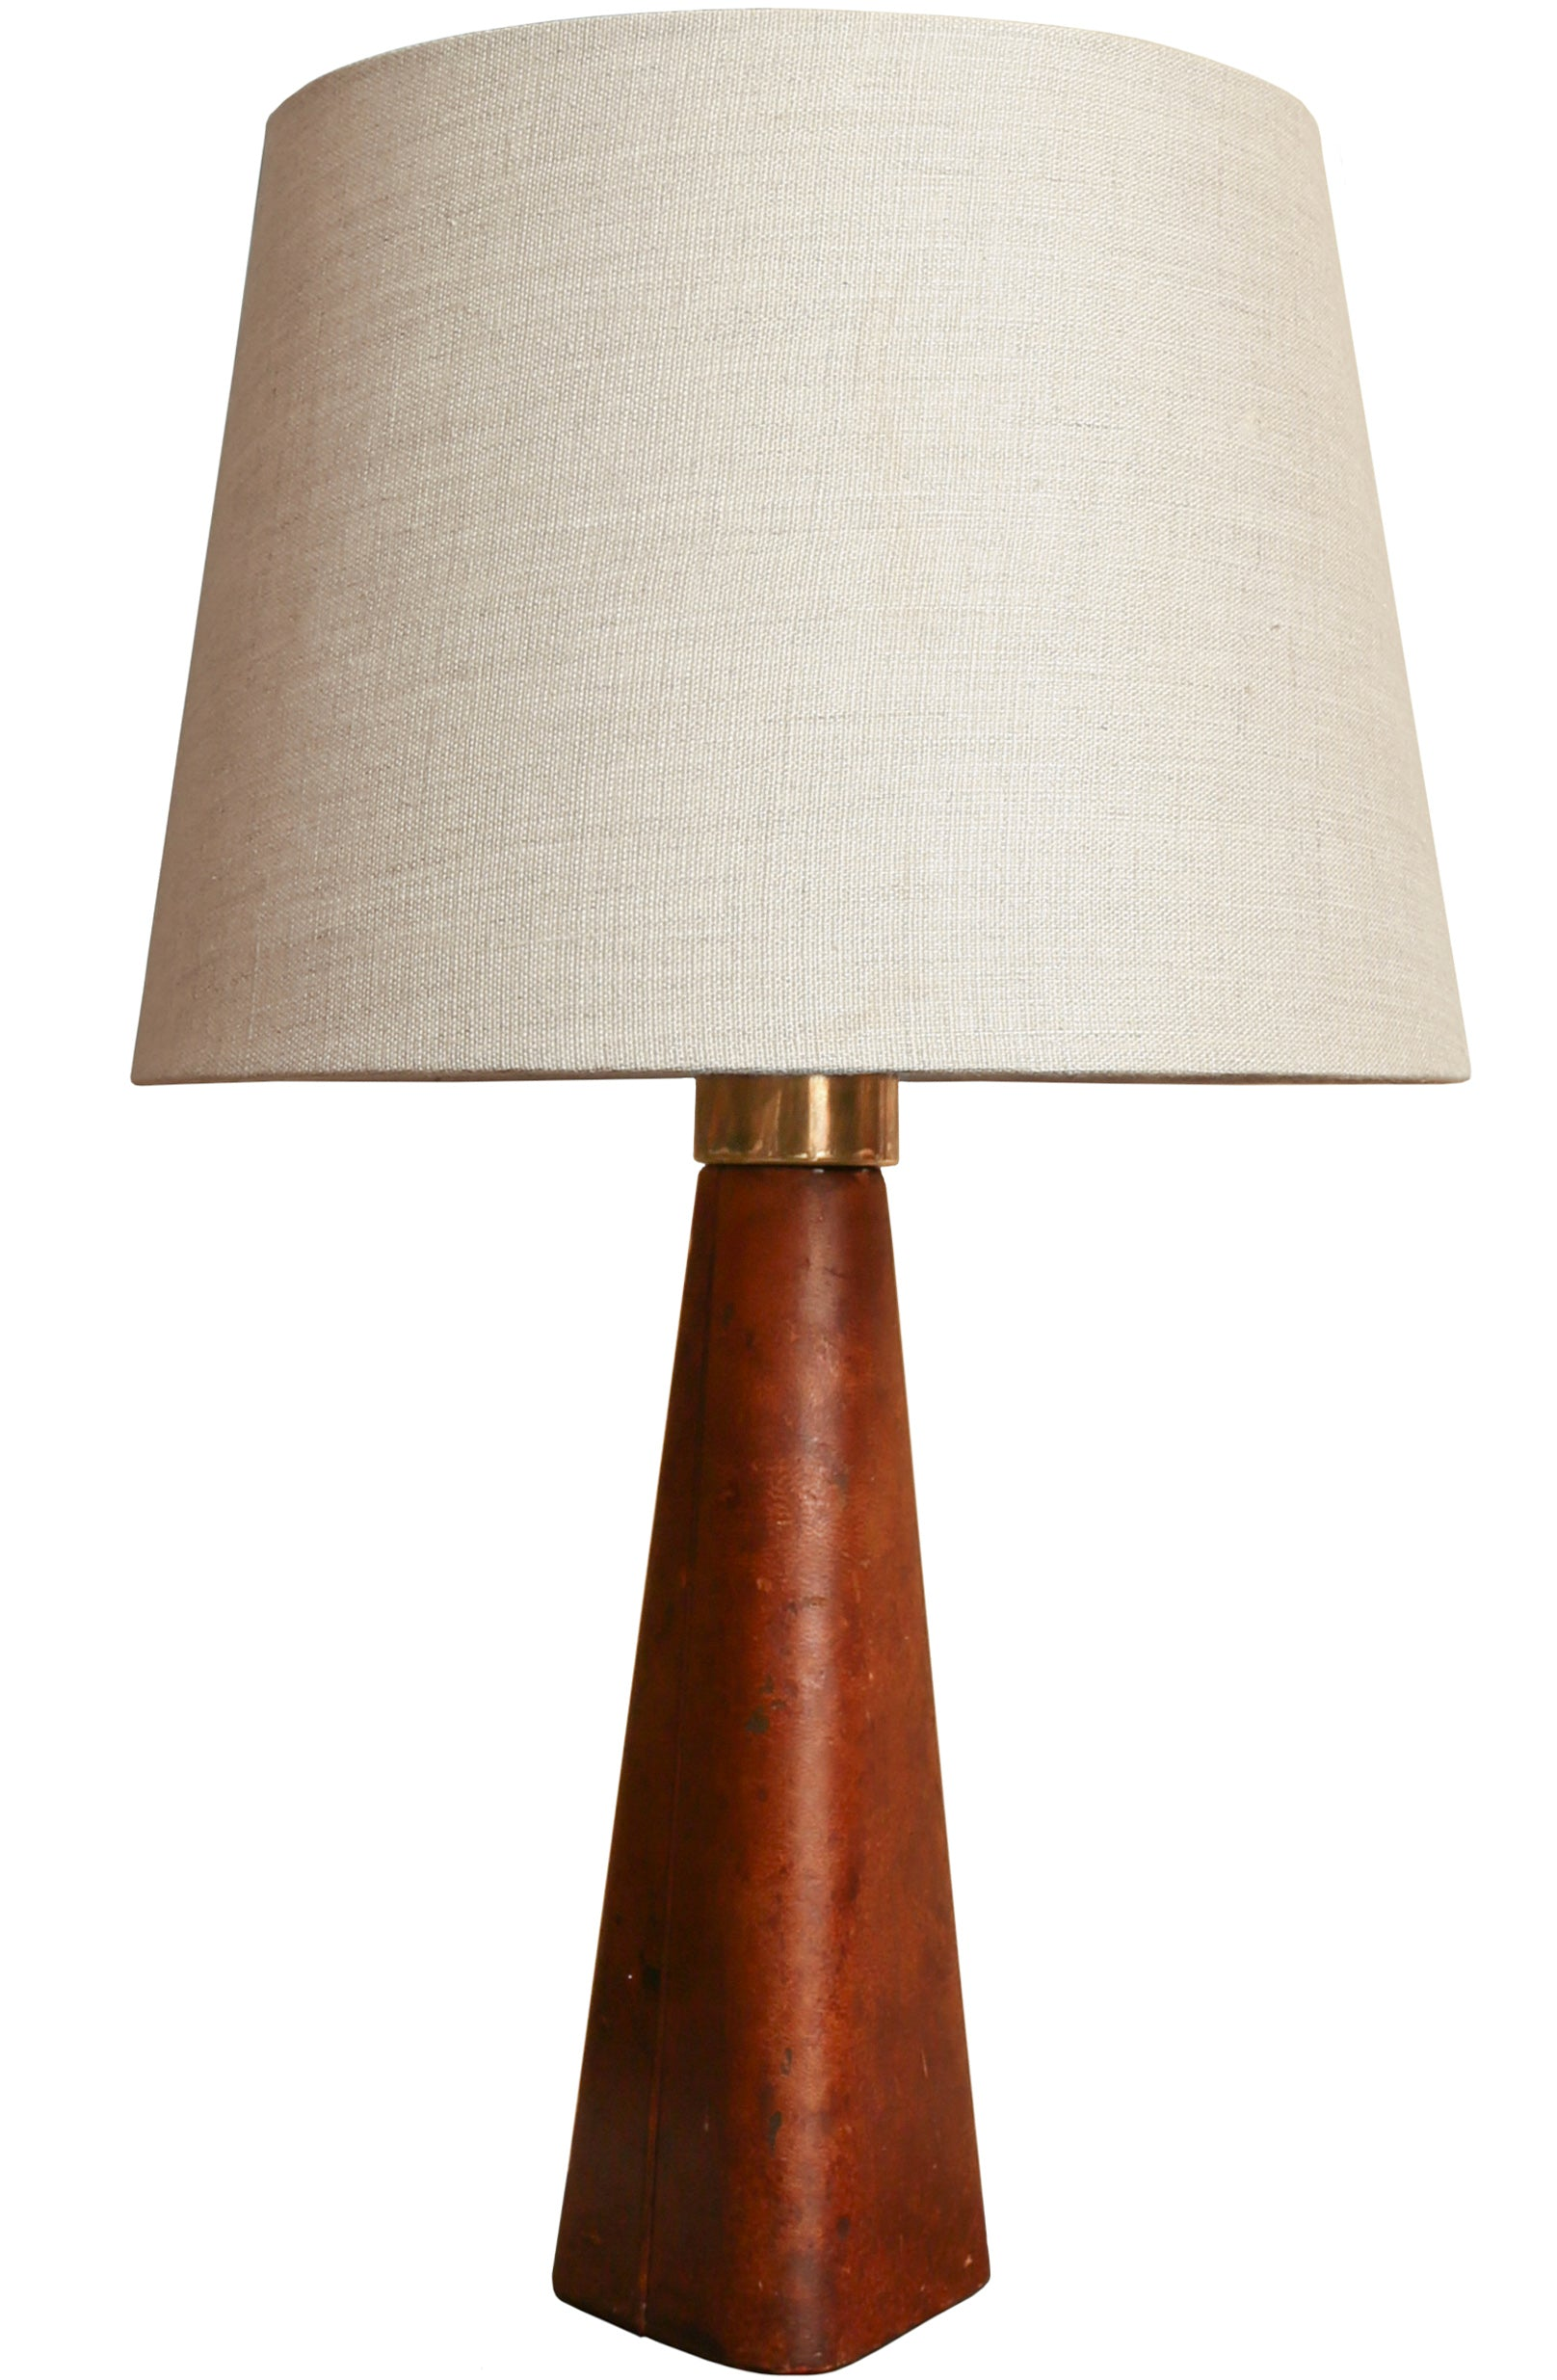 Lisa Johansson-Pape Leather Table Lamp, Model 46-186, Stockmann-Orno, 1950s - The Exchange Int